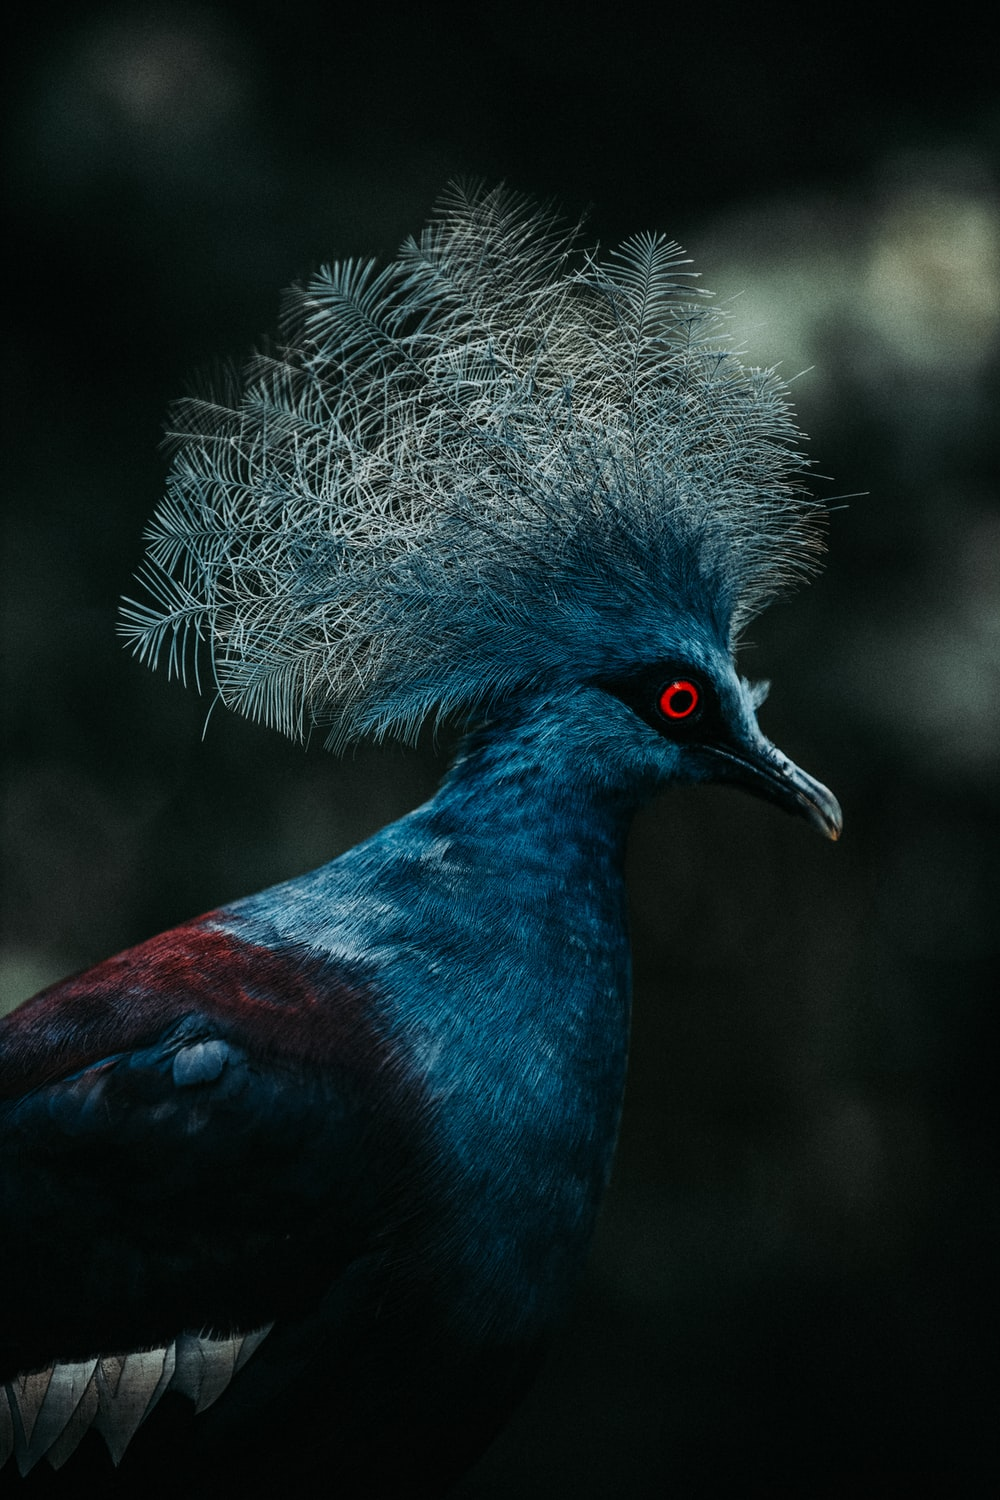 blue and black bird with white fur